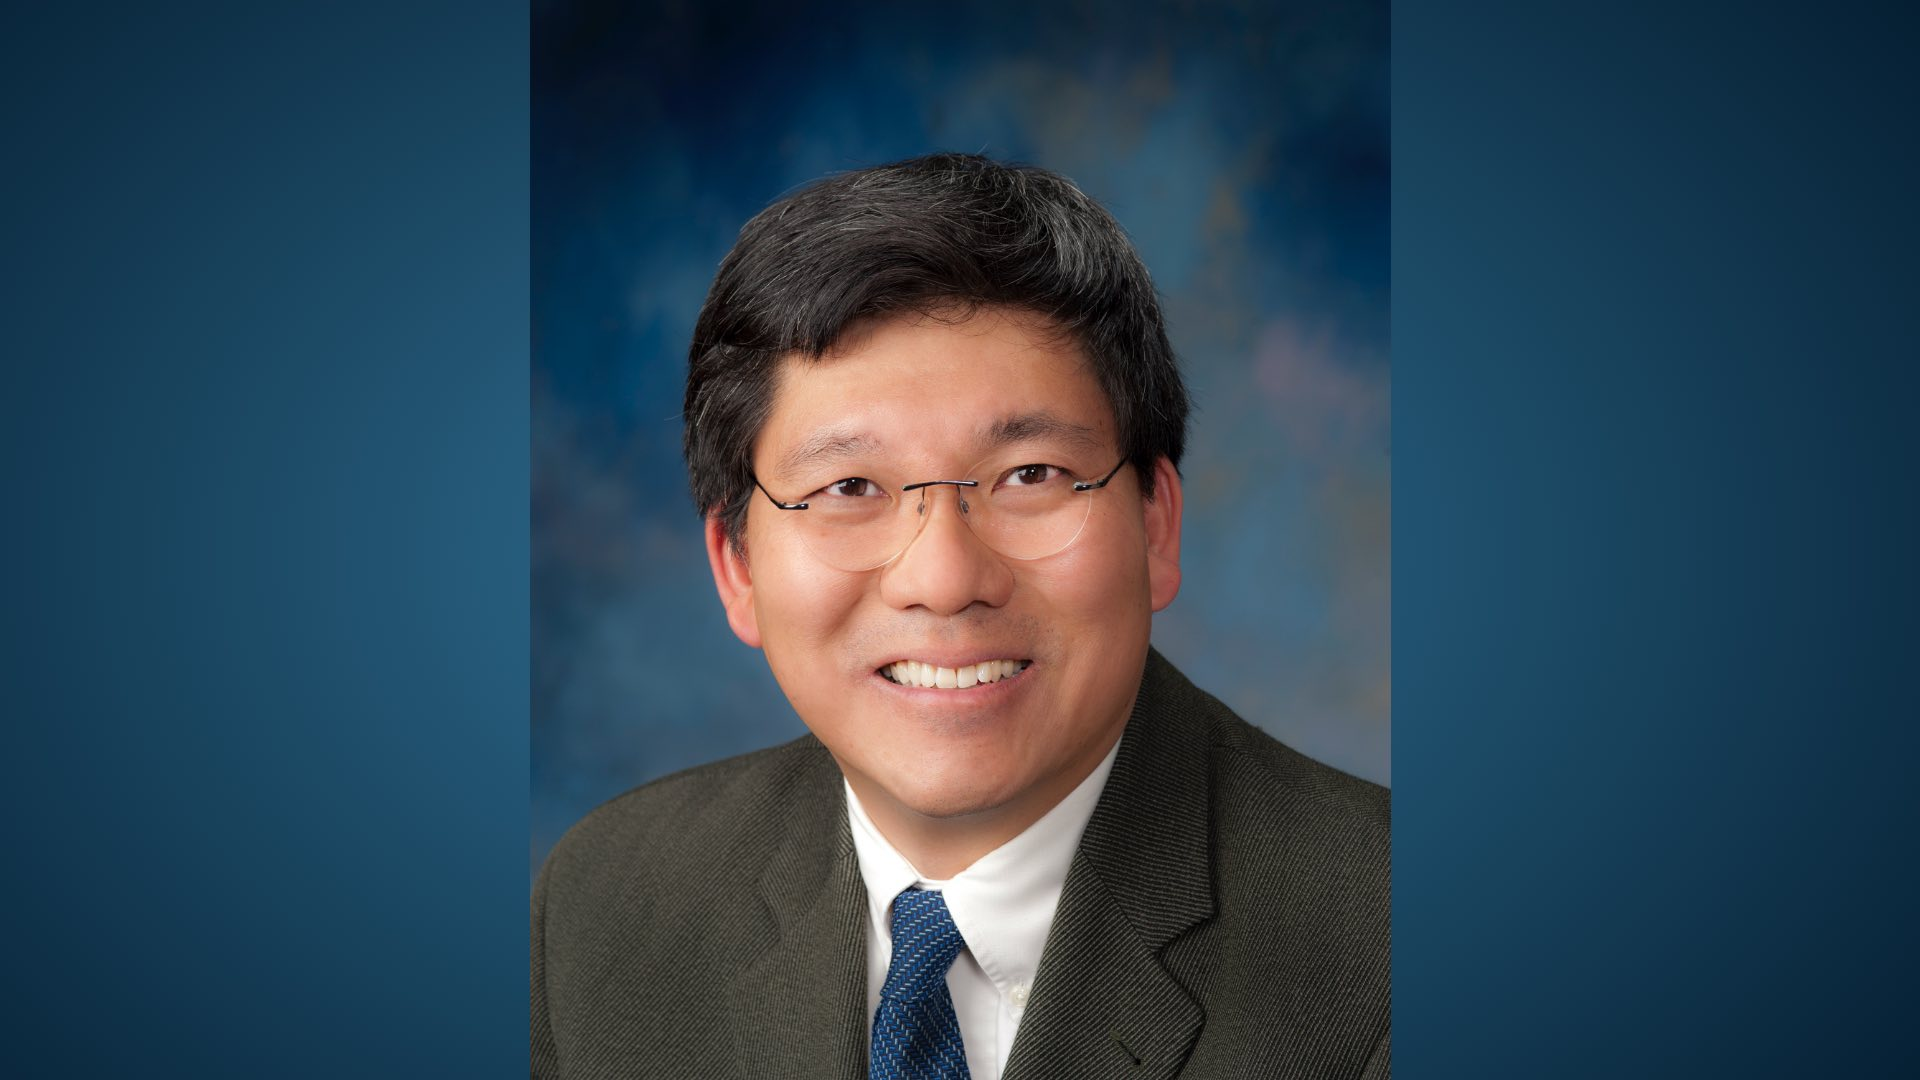 Edward Chu, M.D., Cancer Center Director, Speaks with the Editor and Publisher of The Cancer Letter